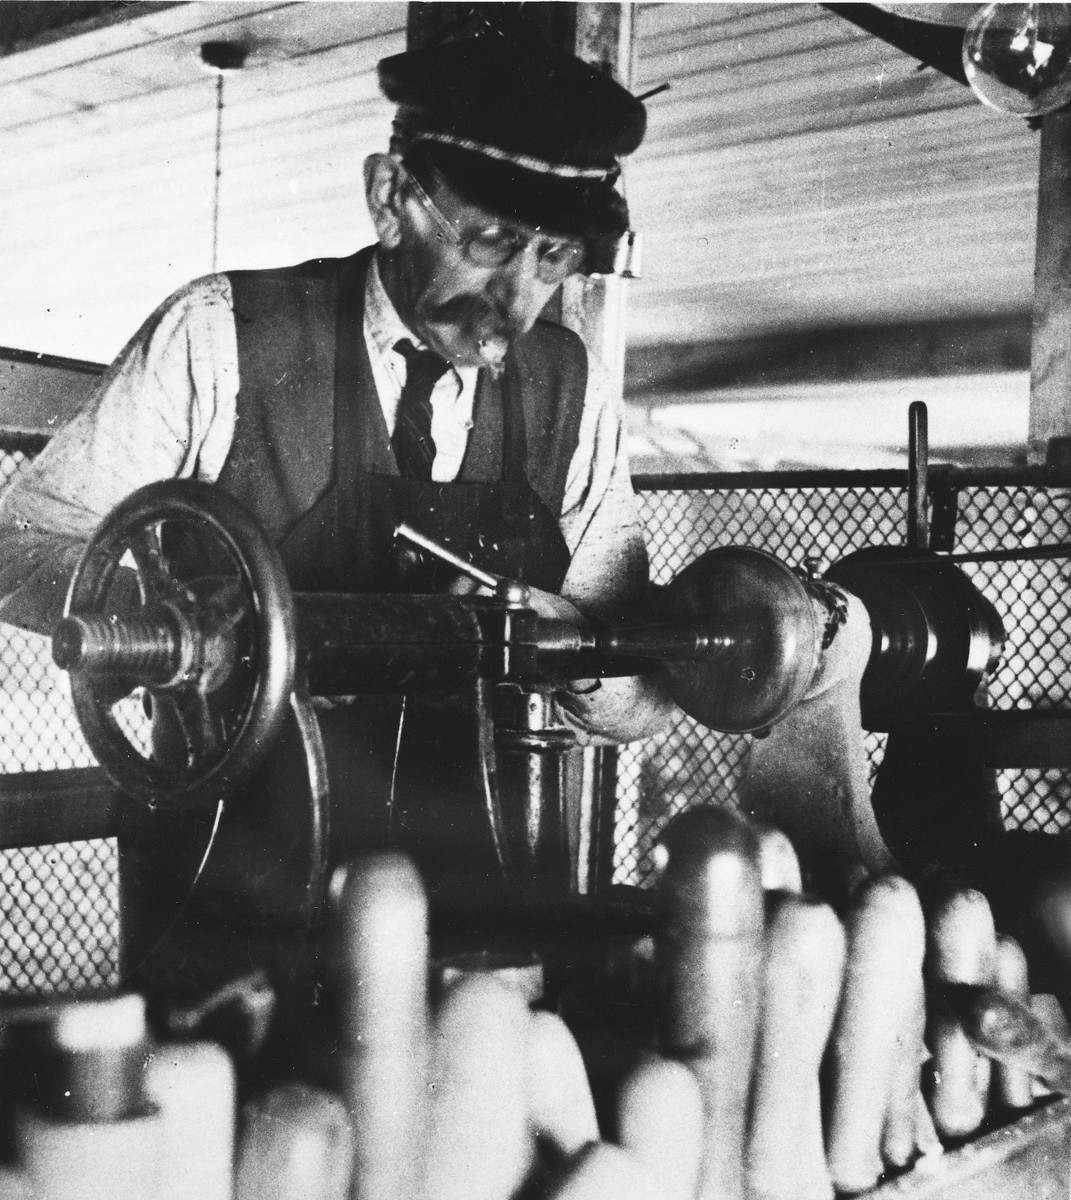 A prisoner works in a machine shop at a Slovak labor camp.